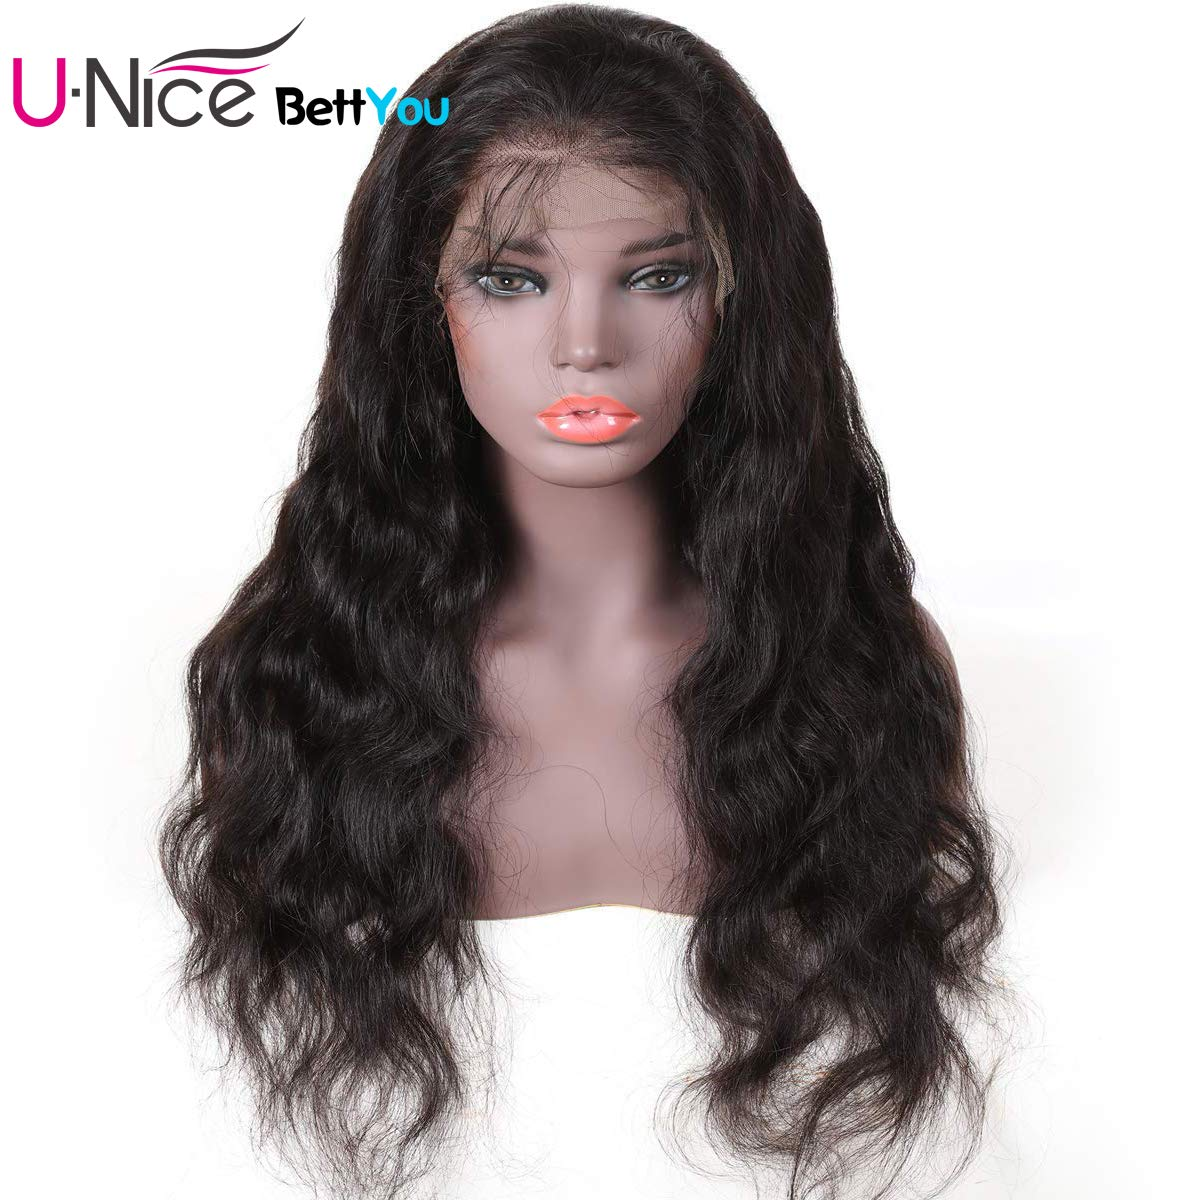 Amazon.com : UNice Hair Bettyou Series Body Wave Lace Front Human Hair Wigs for Women Virgin Brazilian Human Hair Wigs with Baby Hair Natural Black Full End ...